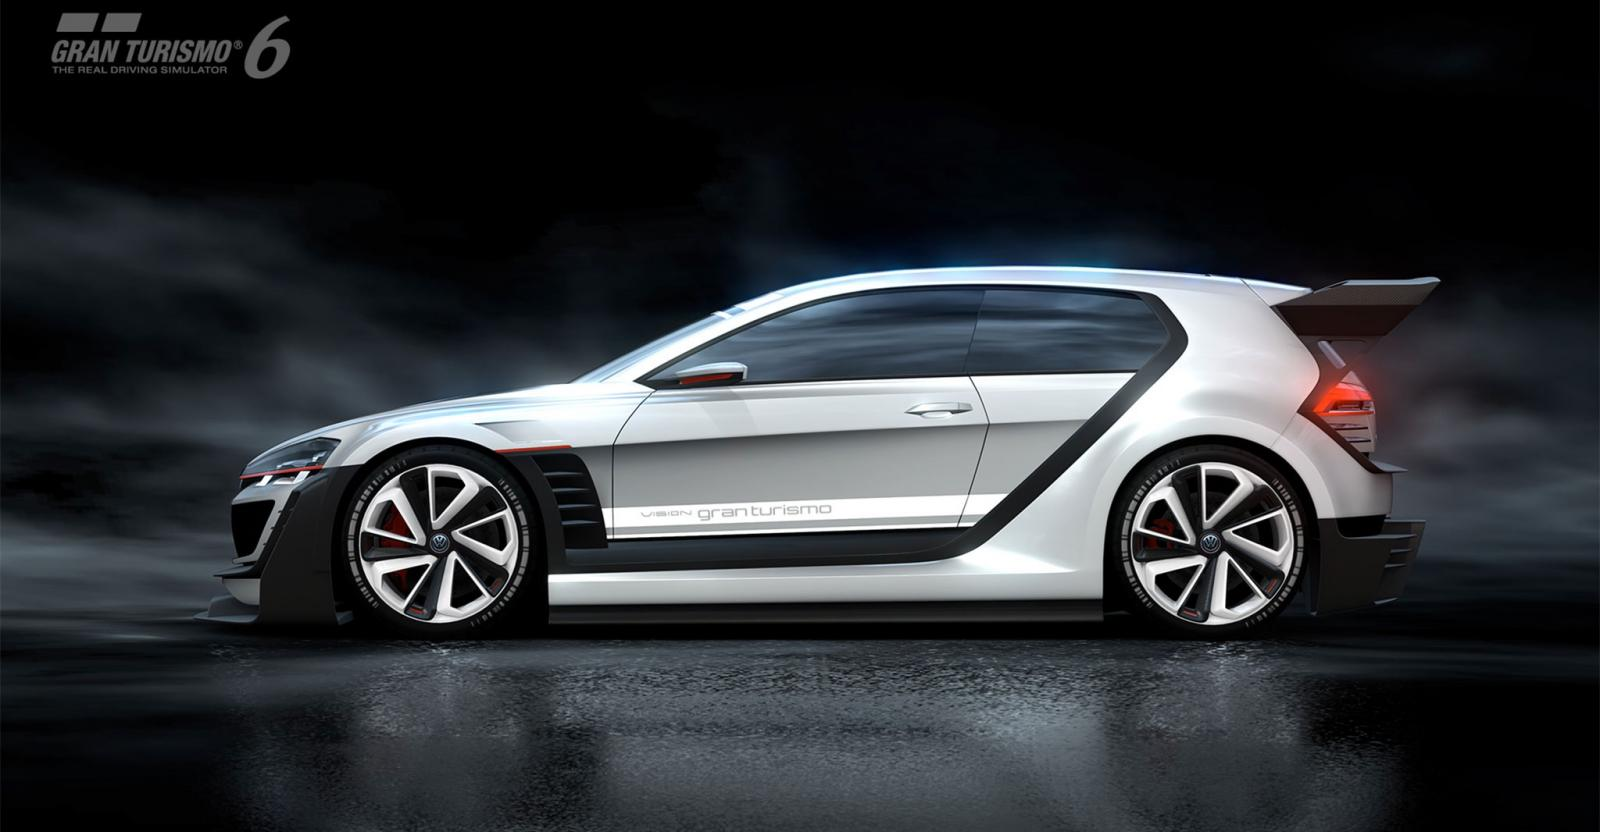 Electric Golf GTI Is Possible, Says Volkswagen Official - autoevolution